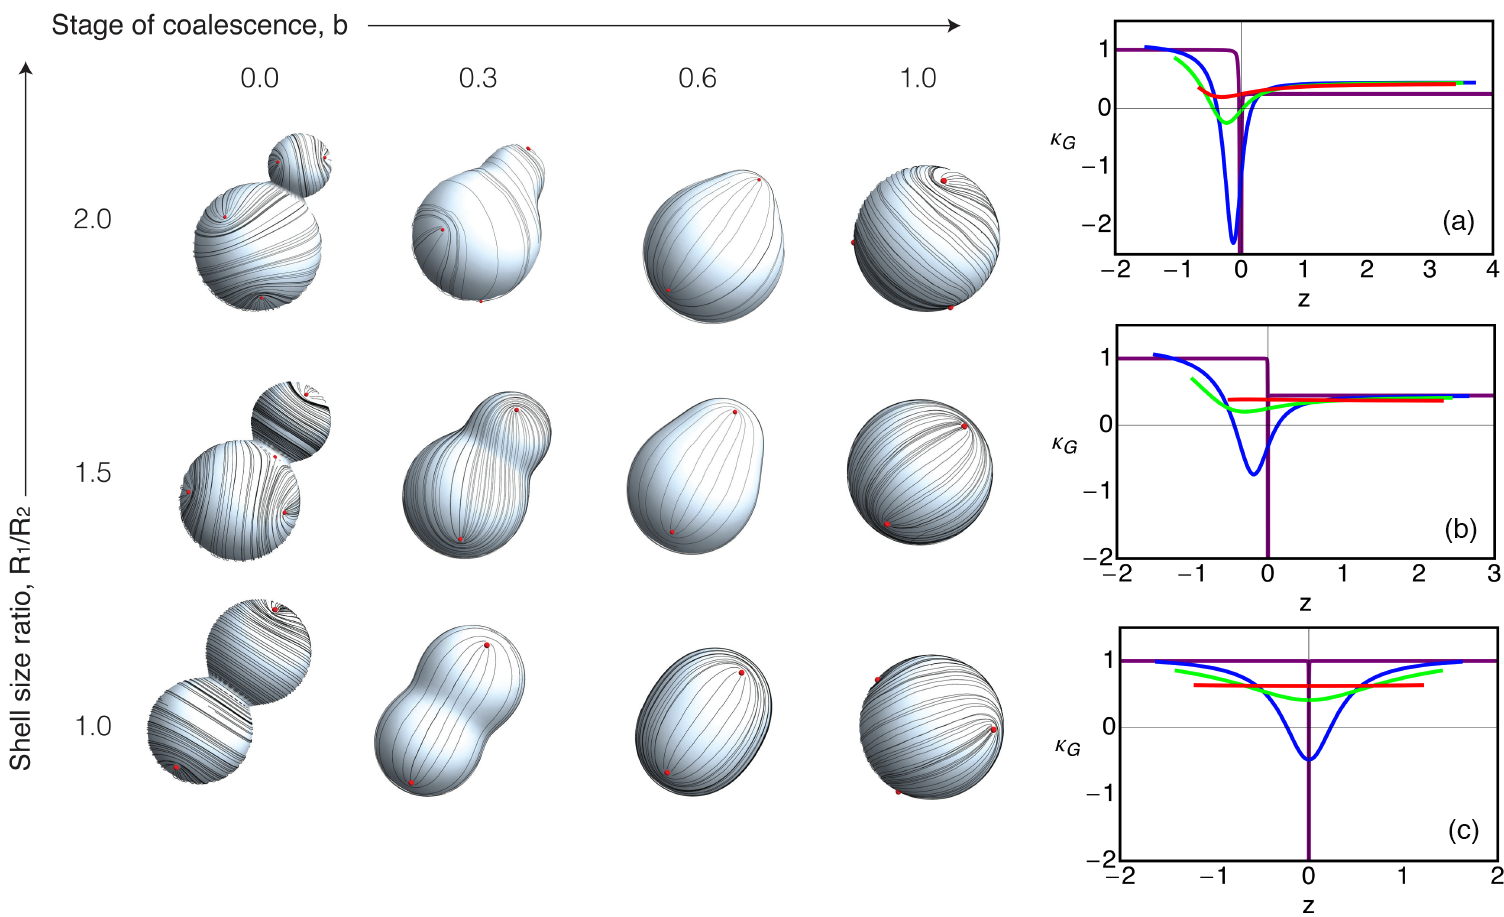 FIG. 1. Left: Defect arrangement on the doublet during coalescence; r = R1/R2 is the spheres' relative size, and b is the stage of coalescence. For larger values of r, the defect arrangement becomes asymmetric with more defects located on the side with smaller Gaussian curvature. Red dots indicate the positions of the defects. Right: For each shell size ratio on the left [(a):r = 2, (b):r = 1.5, and (c): r = 1], the Gaussian curvatures corresponding to different stages are plotted as a function of z: purple (b = 0), blue (b = 0.3), green (b = 0.6), and red (b = 1).